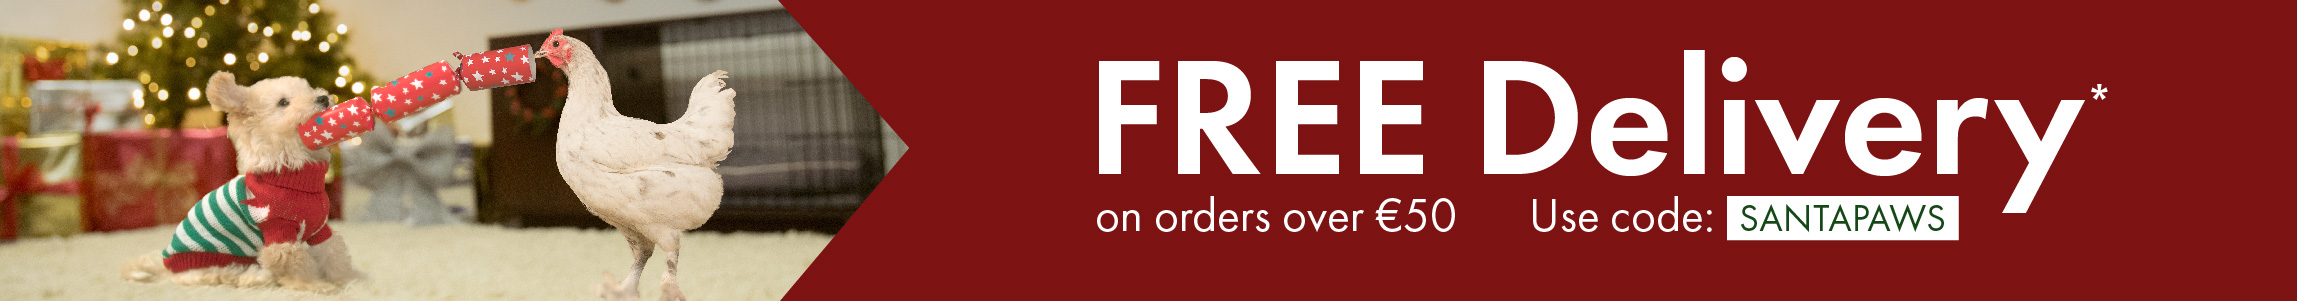 Christmas Promo Free Delivery